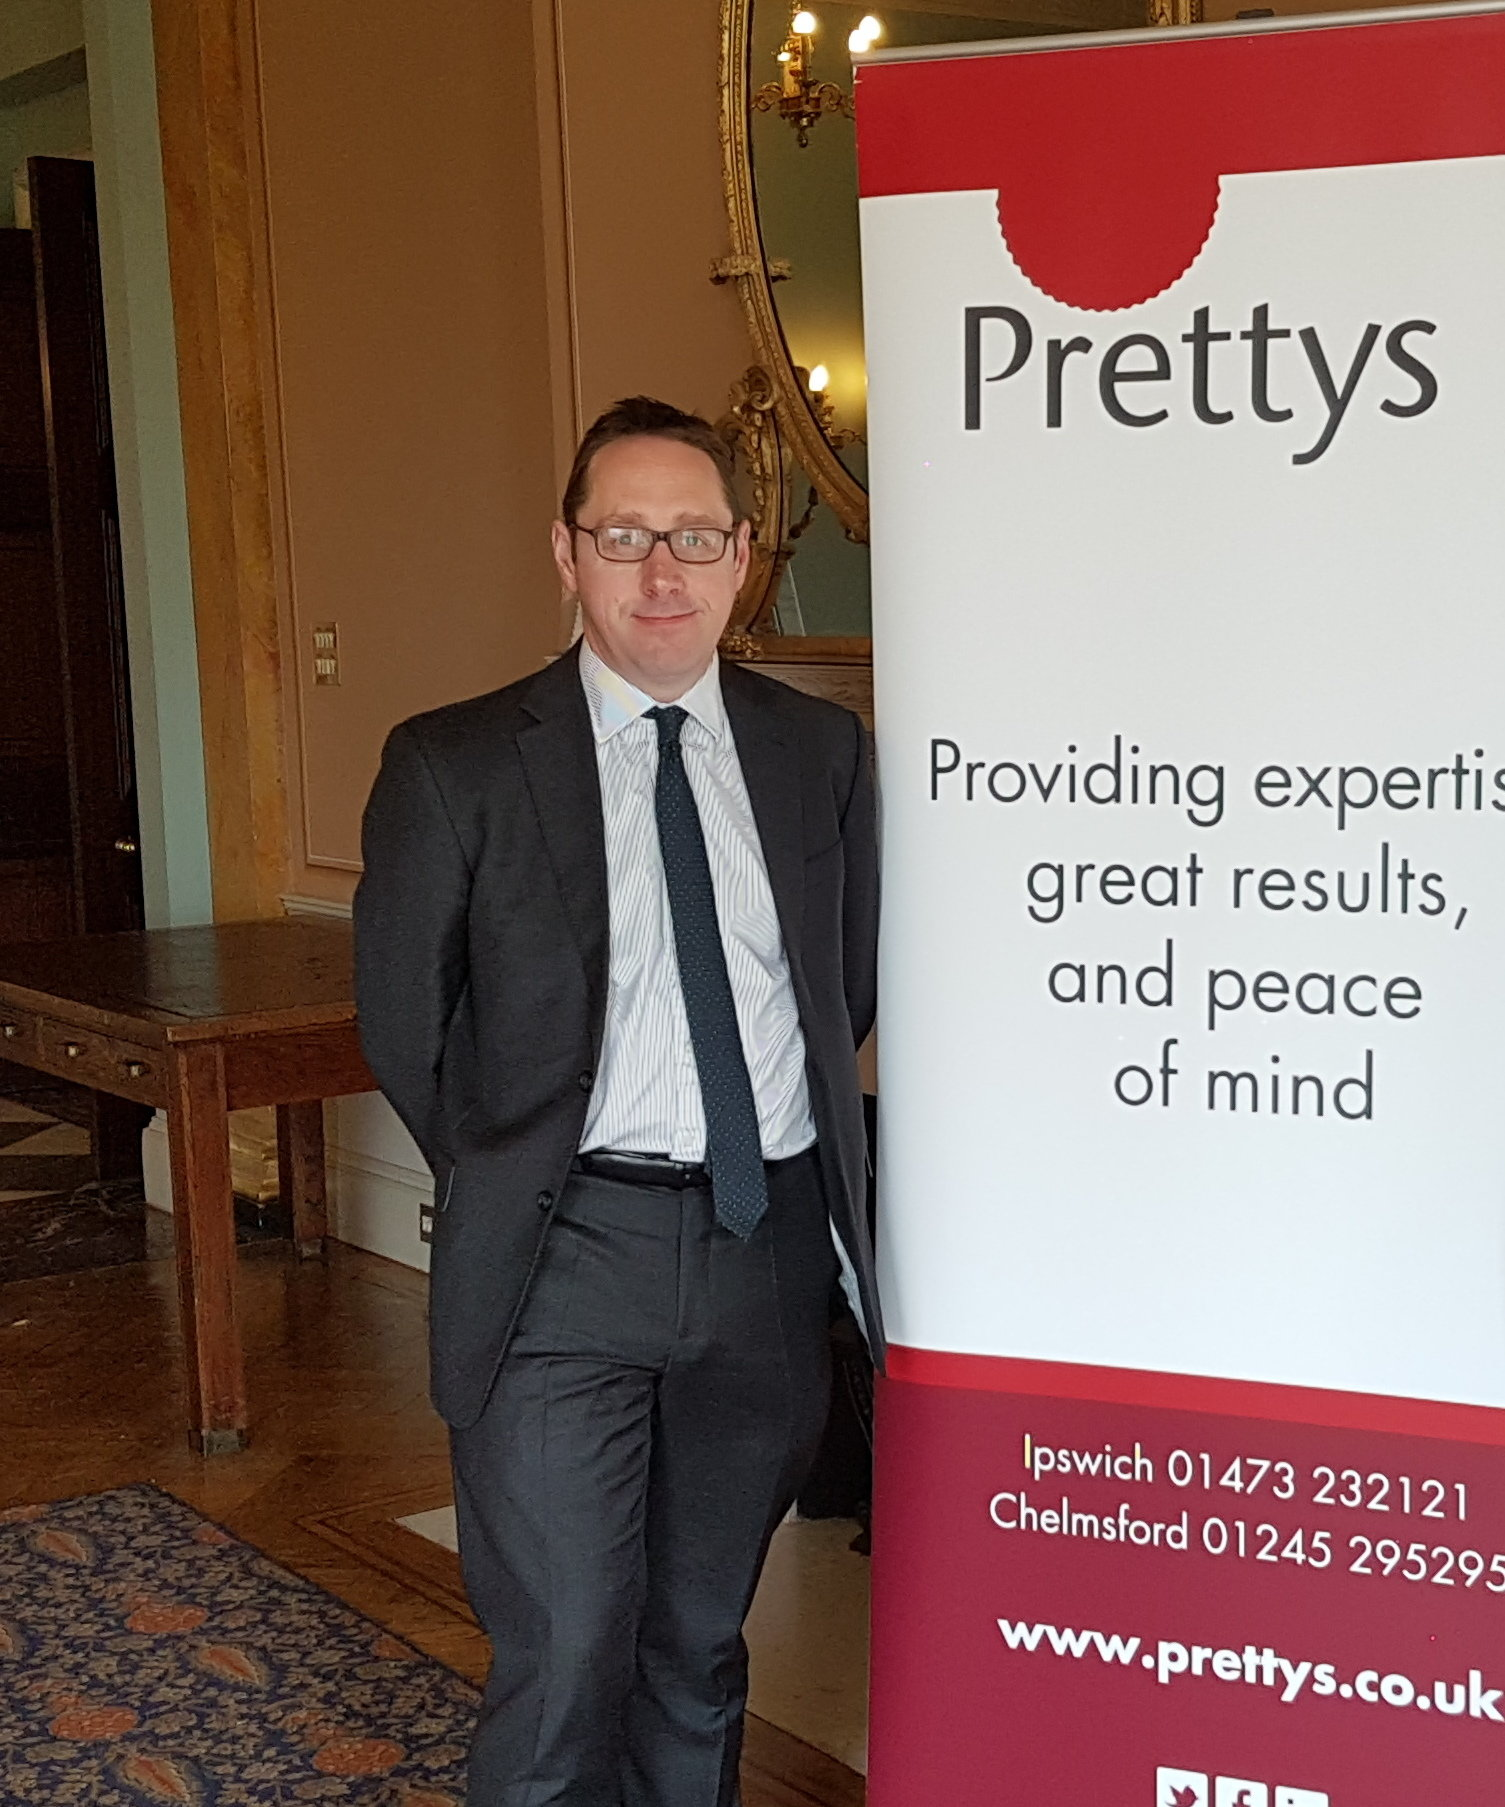 Matthew Colem Partner at Prettys